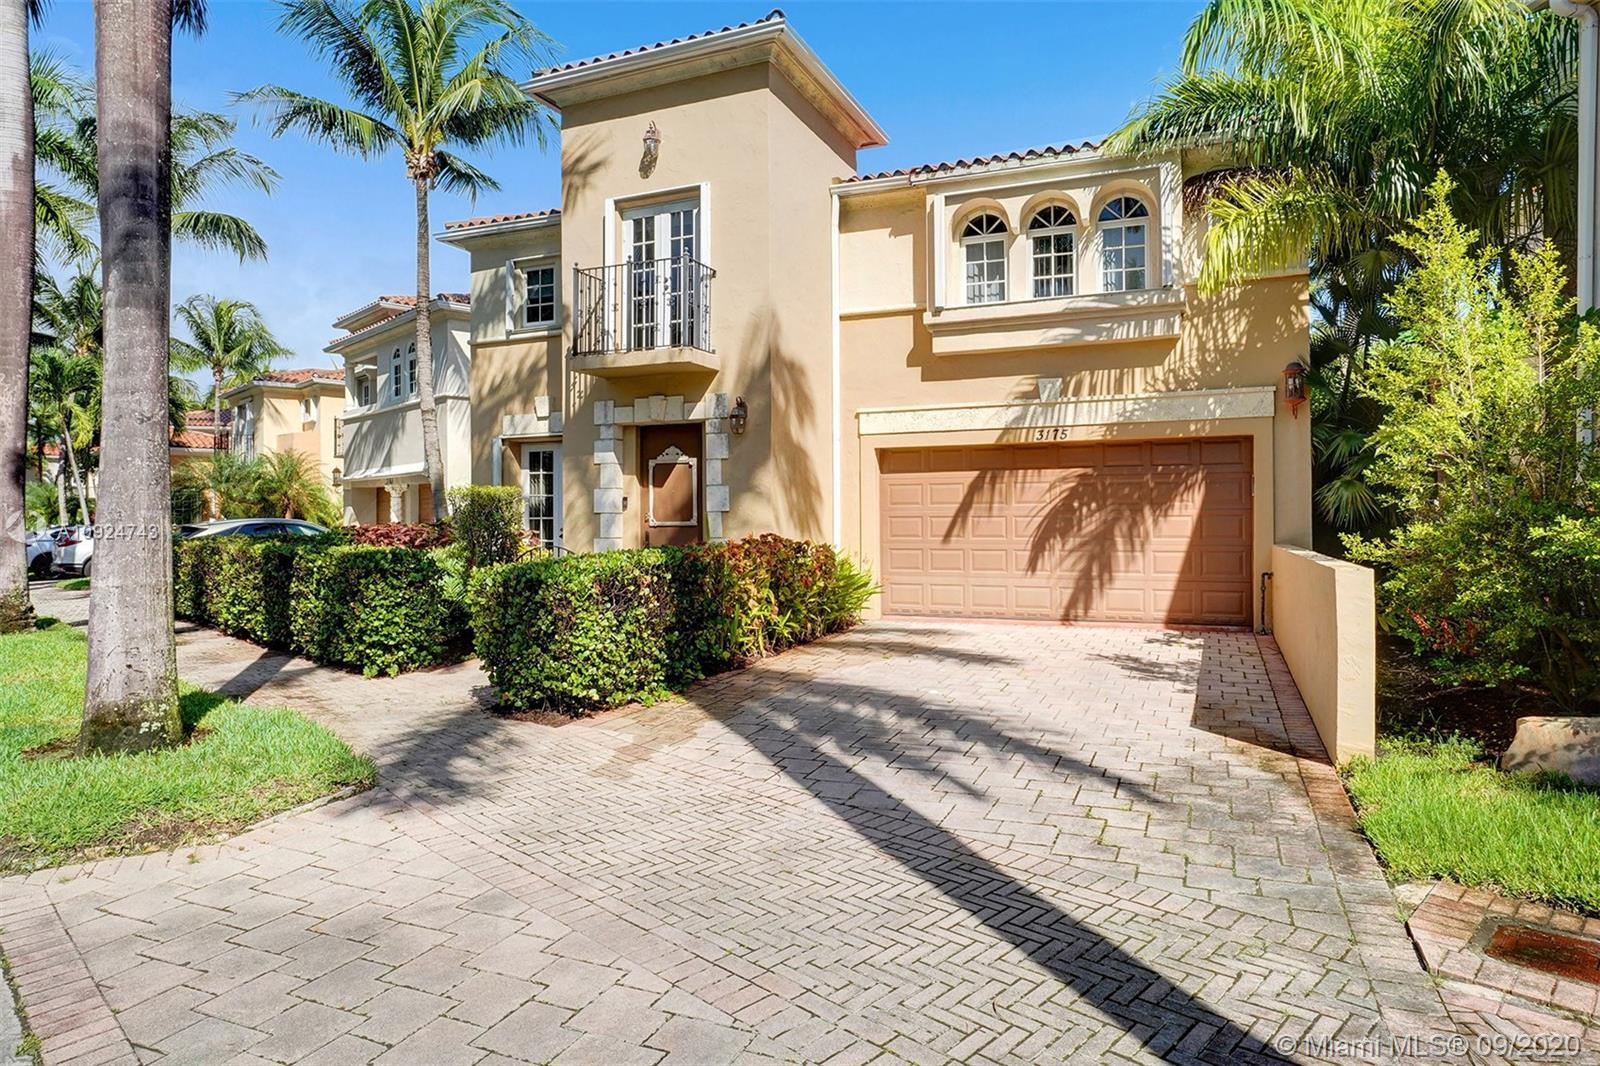 LUXURY JEWEL BEHIND THE GATES OF AVENTURA LAKES, CONVENIENTLY SITUATED IN THE HEART OF AVENTURA. OPE